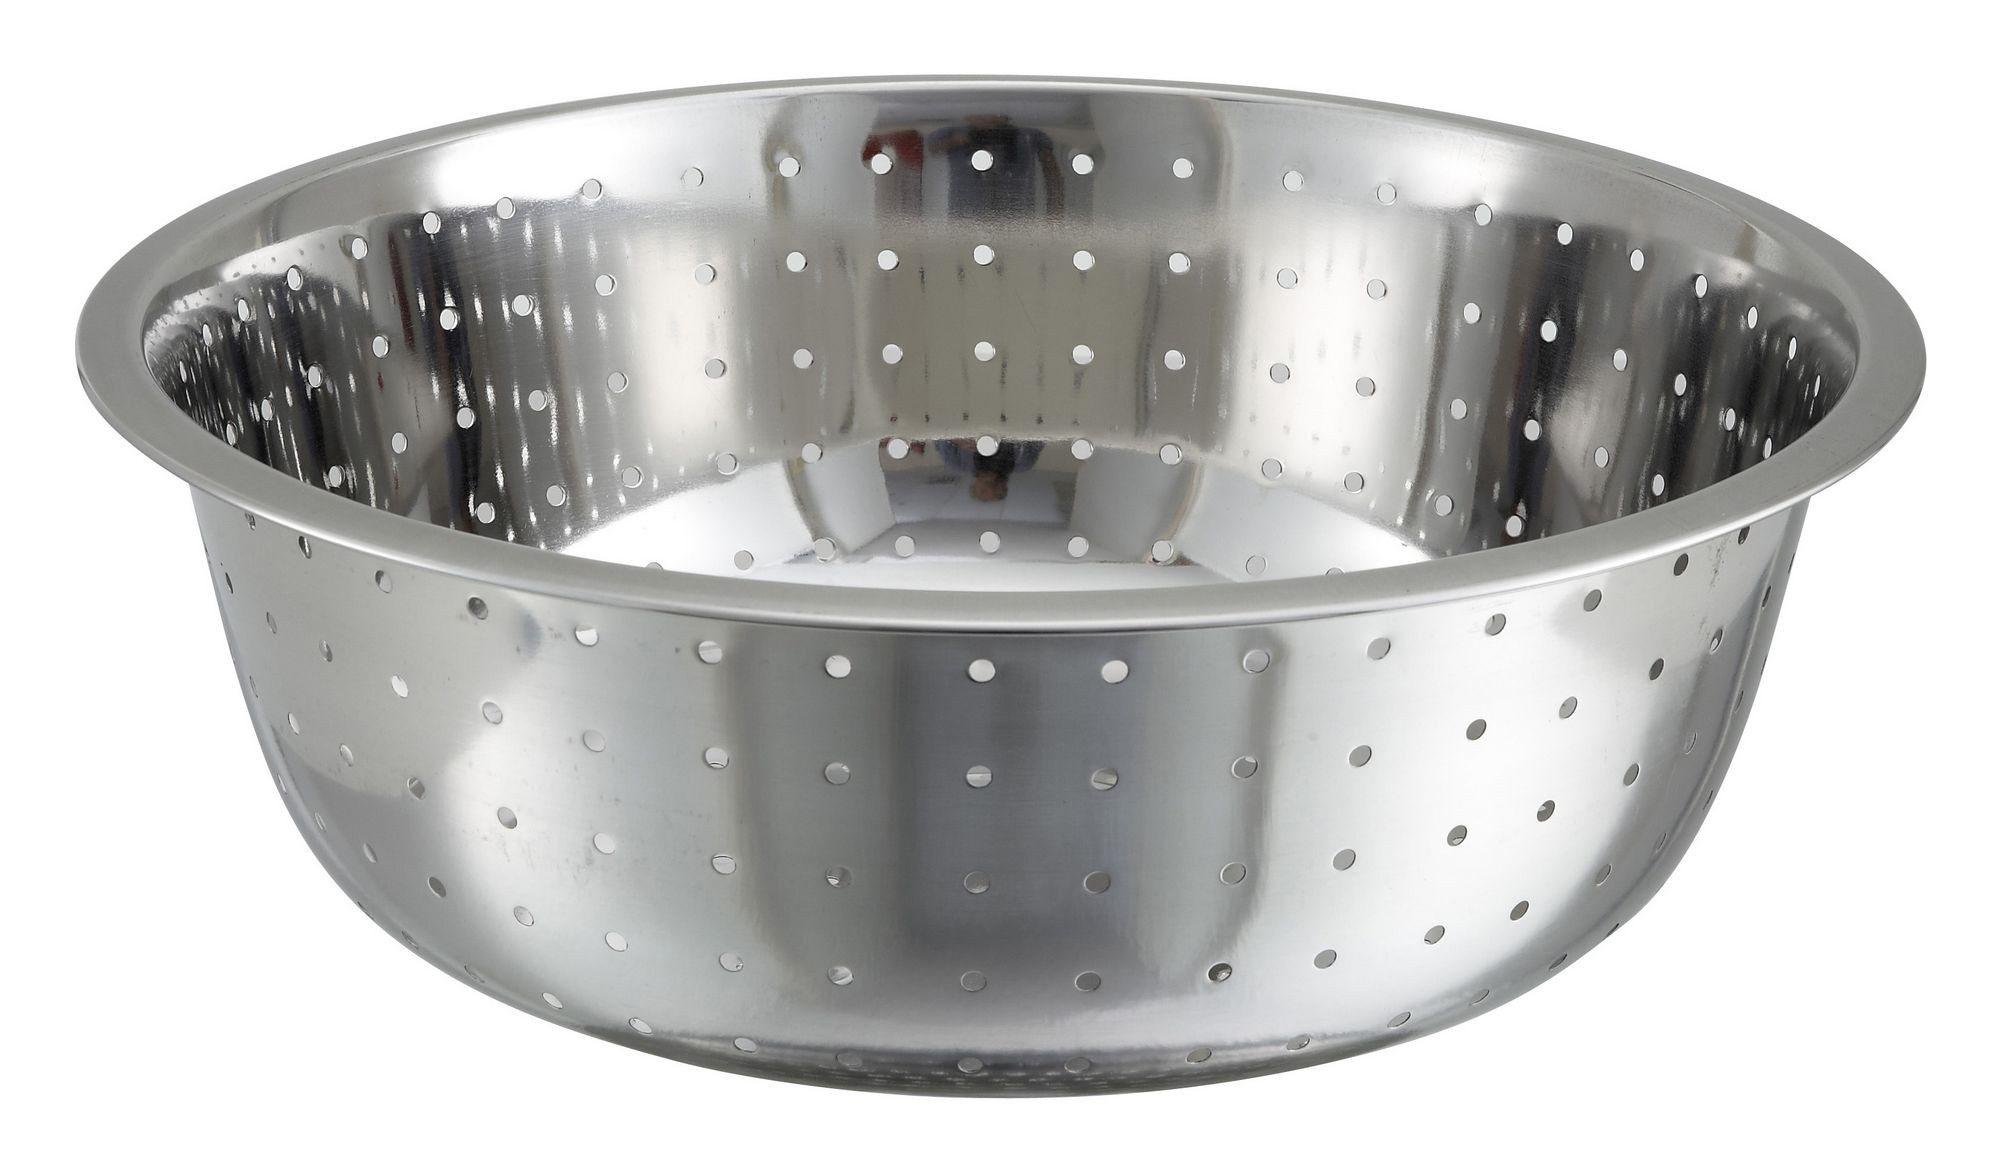 Stainless Steel Chinese Colander (5 MM. Holes) - 15